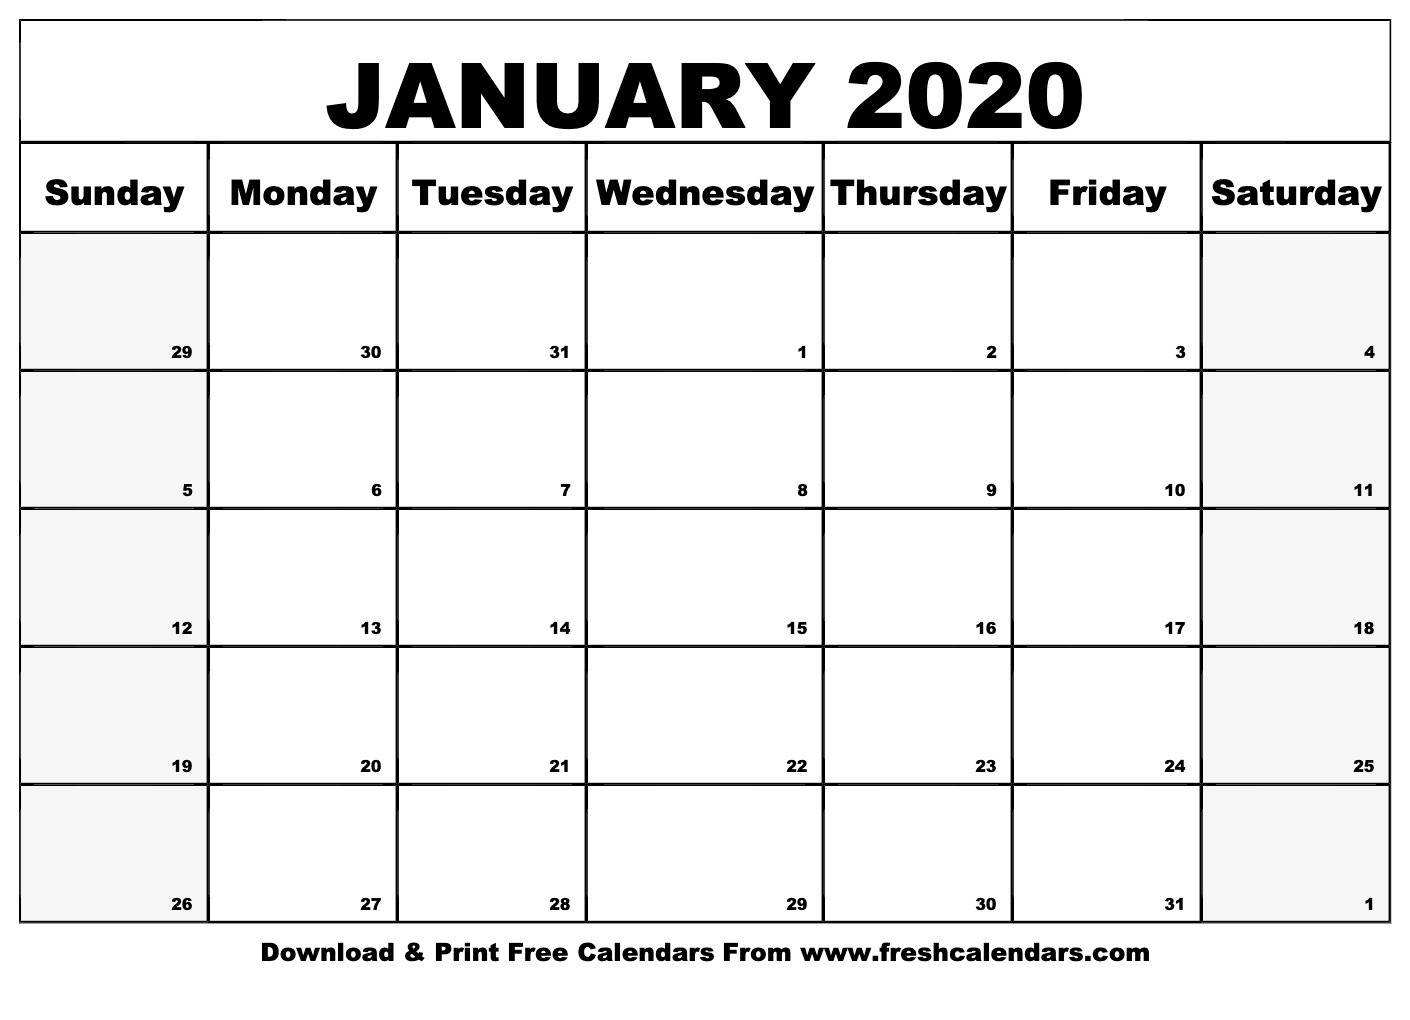 January 2020 Calendar Printable - Fresh Calendars-January 2020 Calendar In Excel